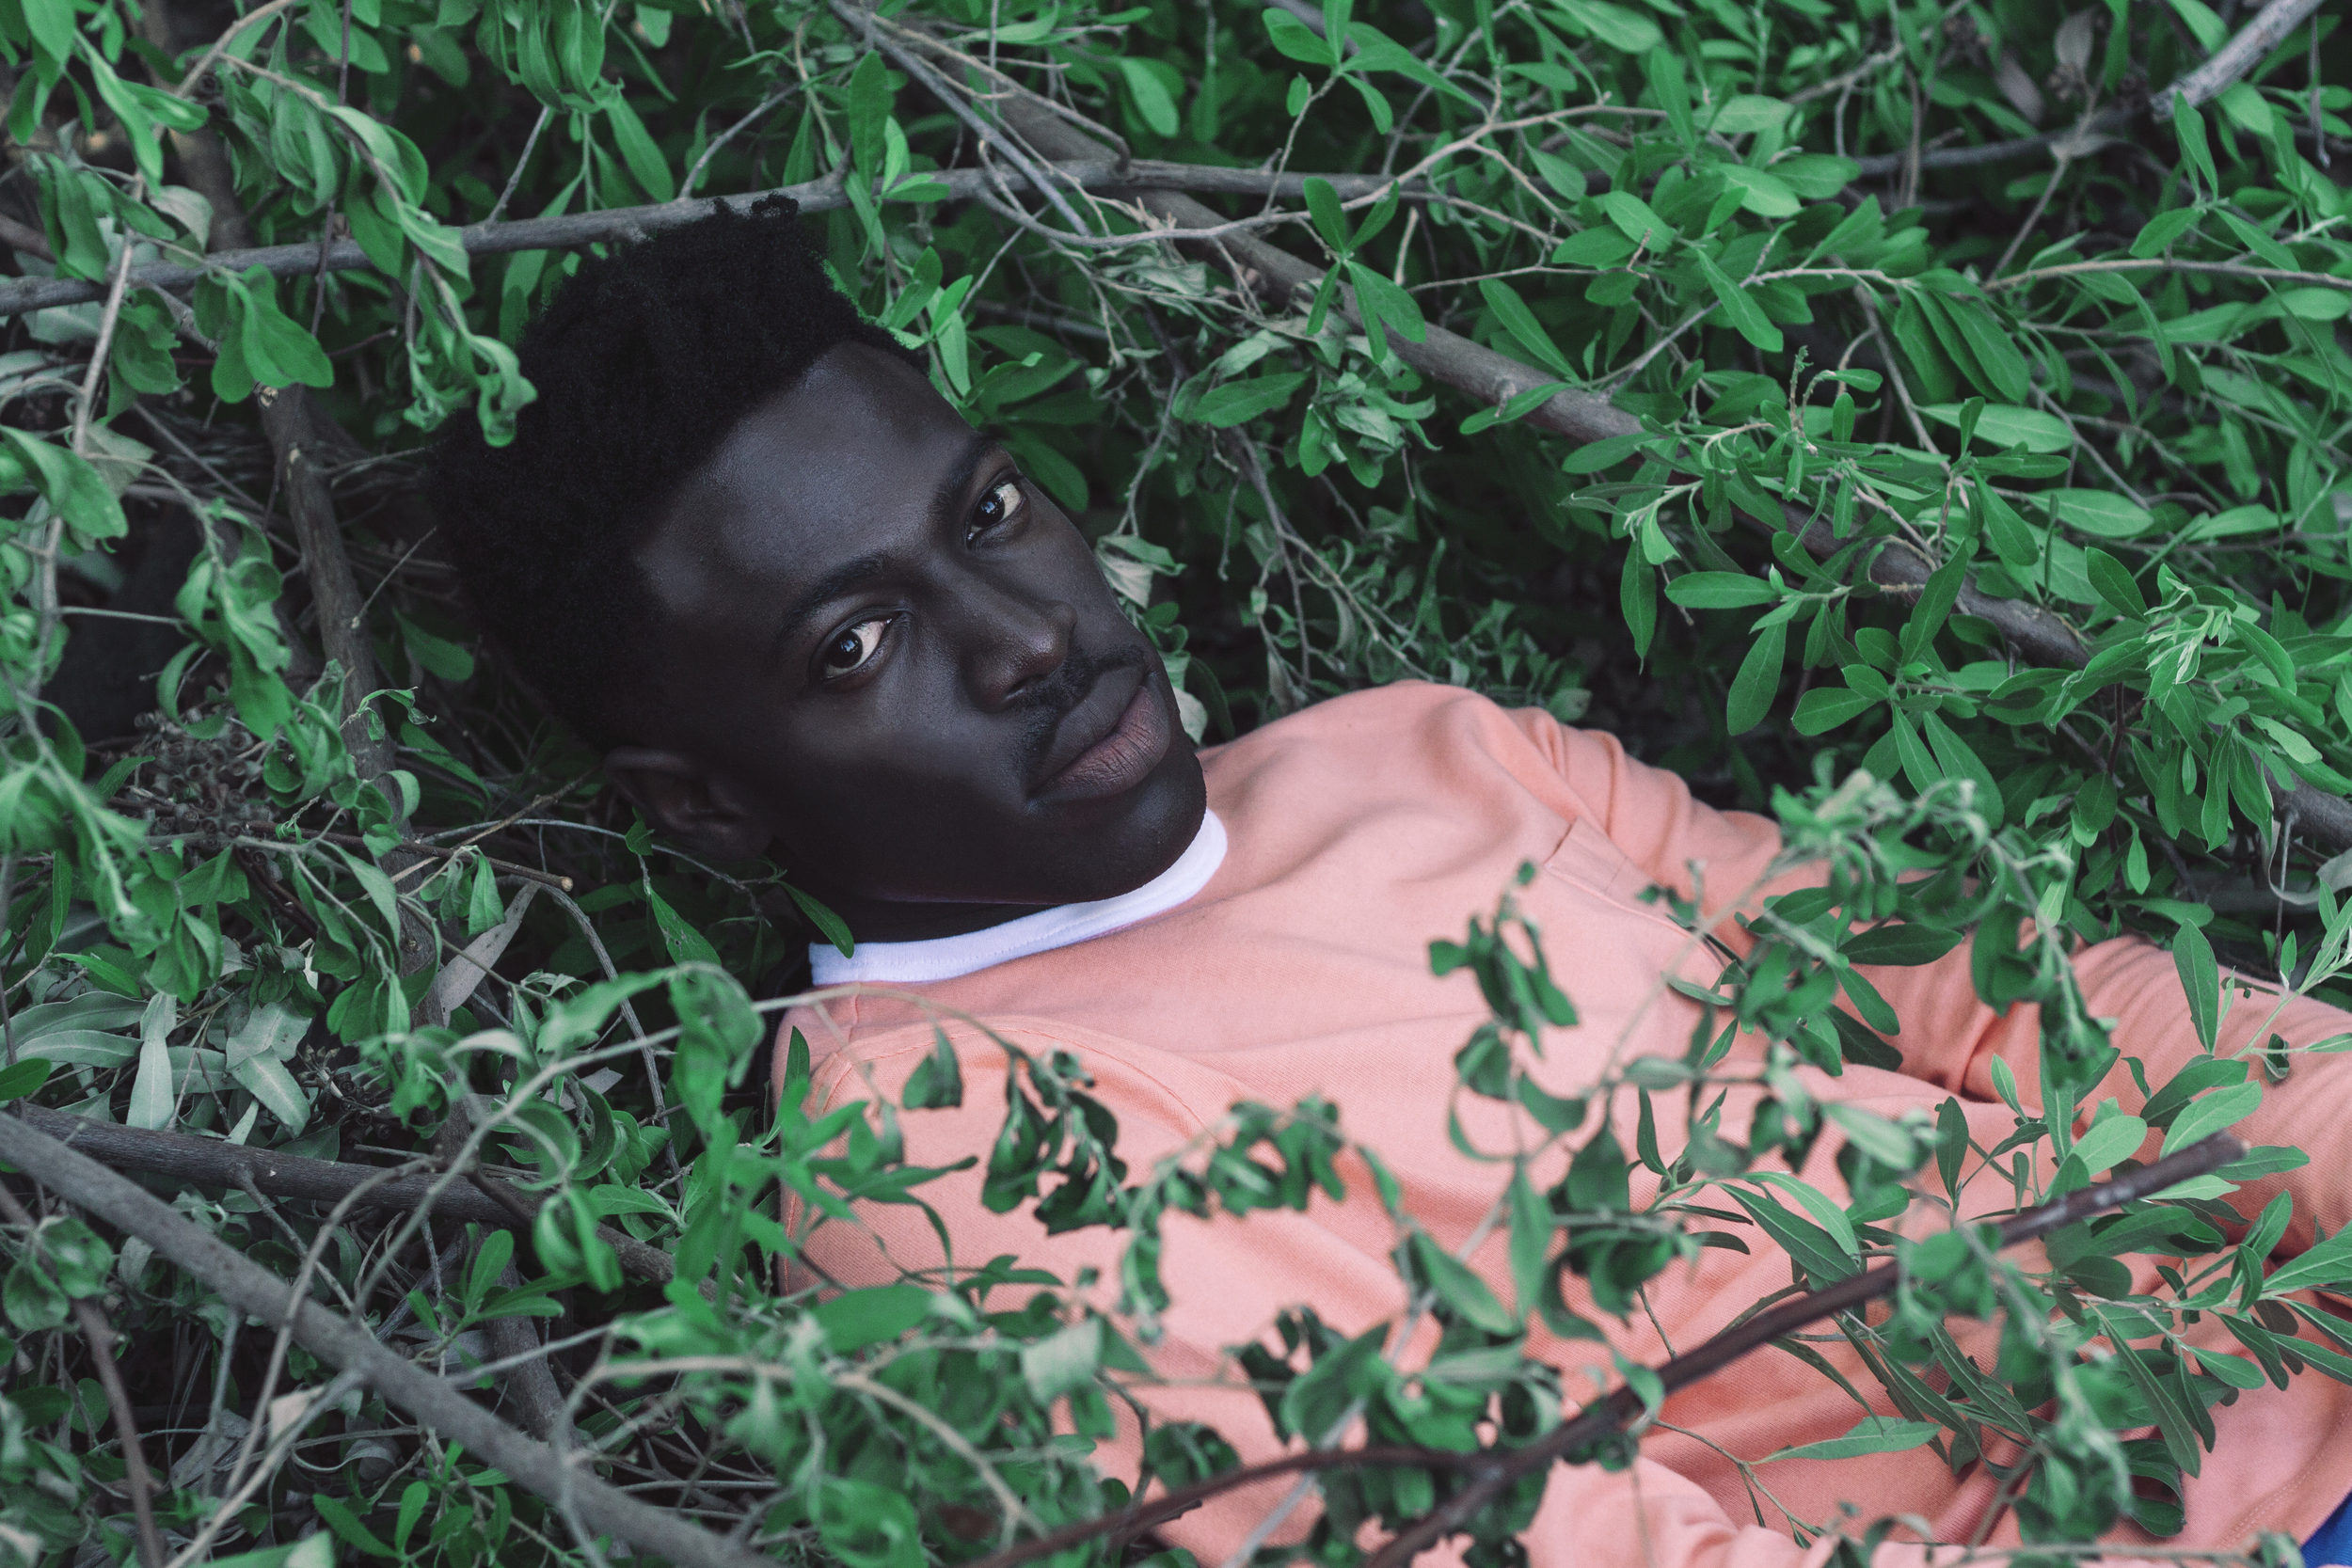 Moses Sumney for Saint Heron, 2014 / Style: James Phlemons / Creative Direction: Solange Knowles